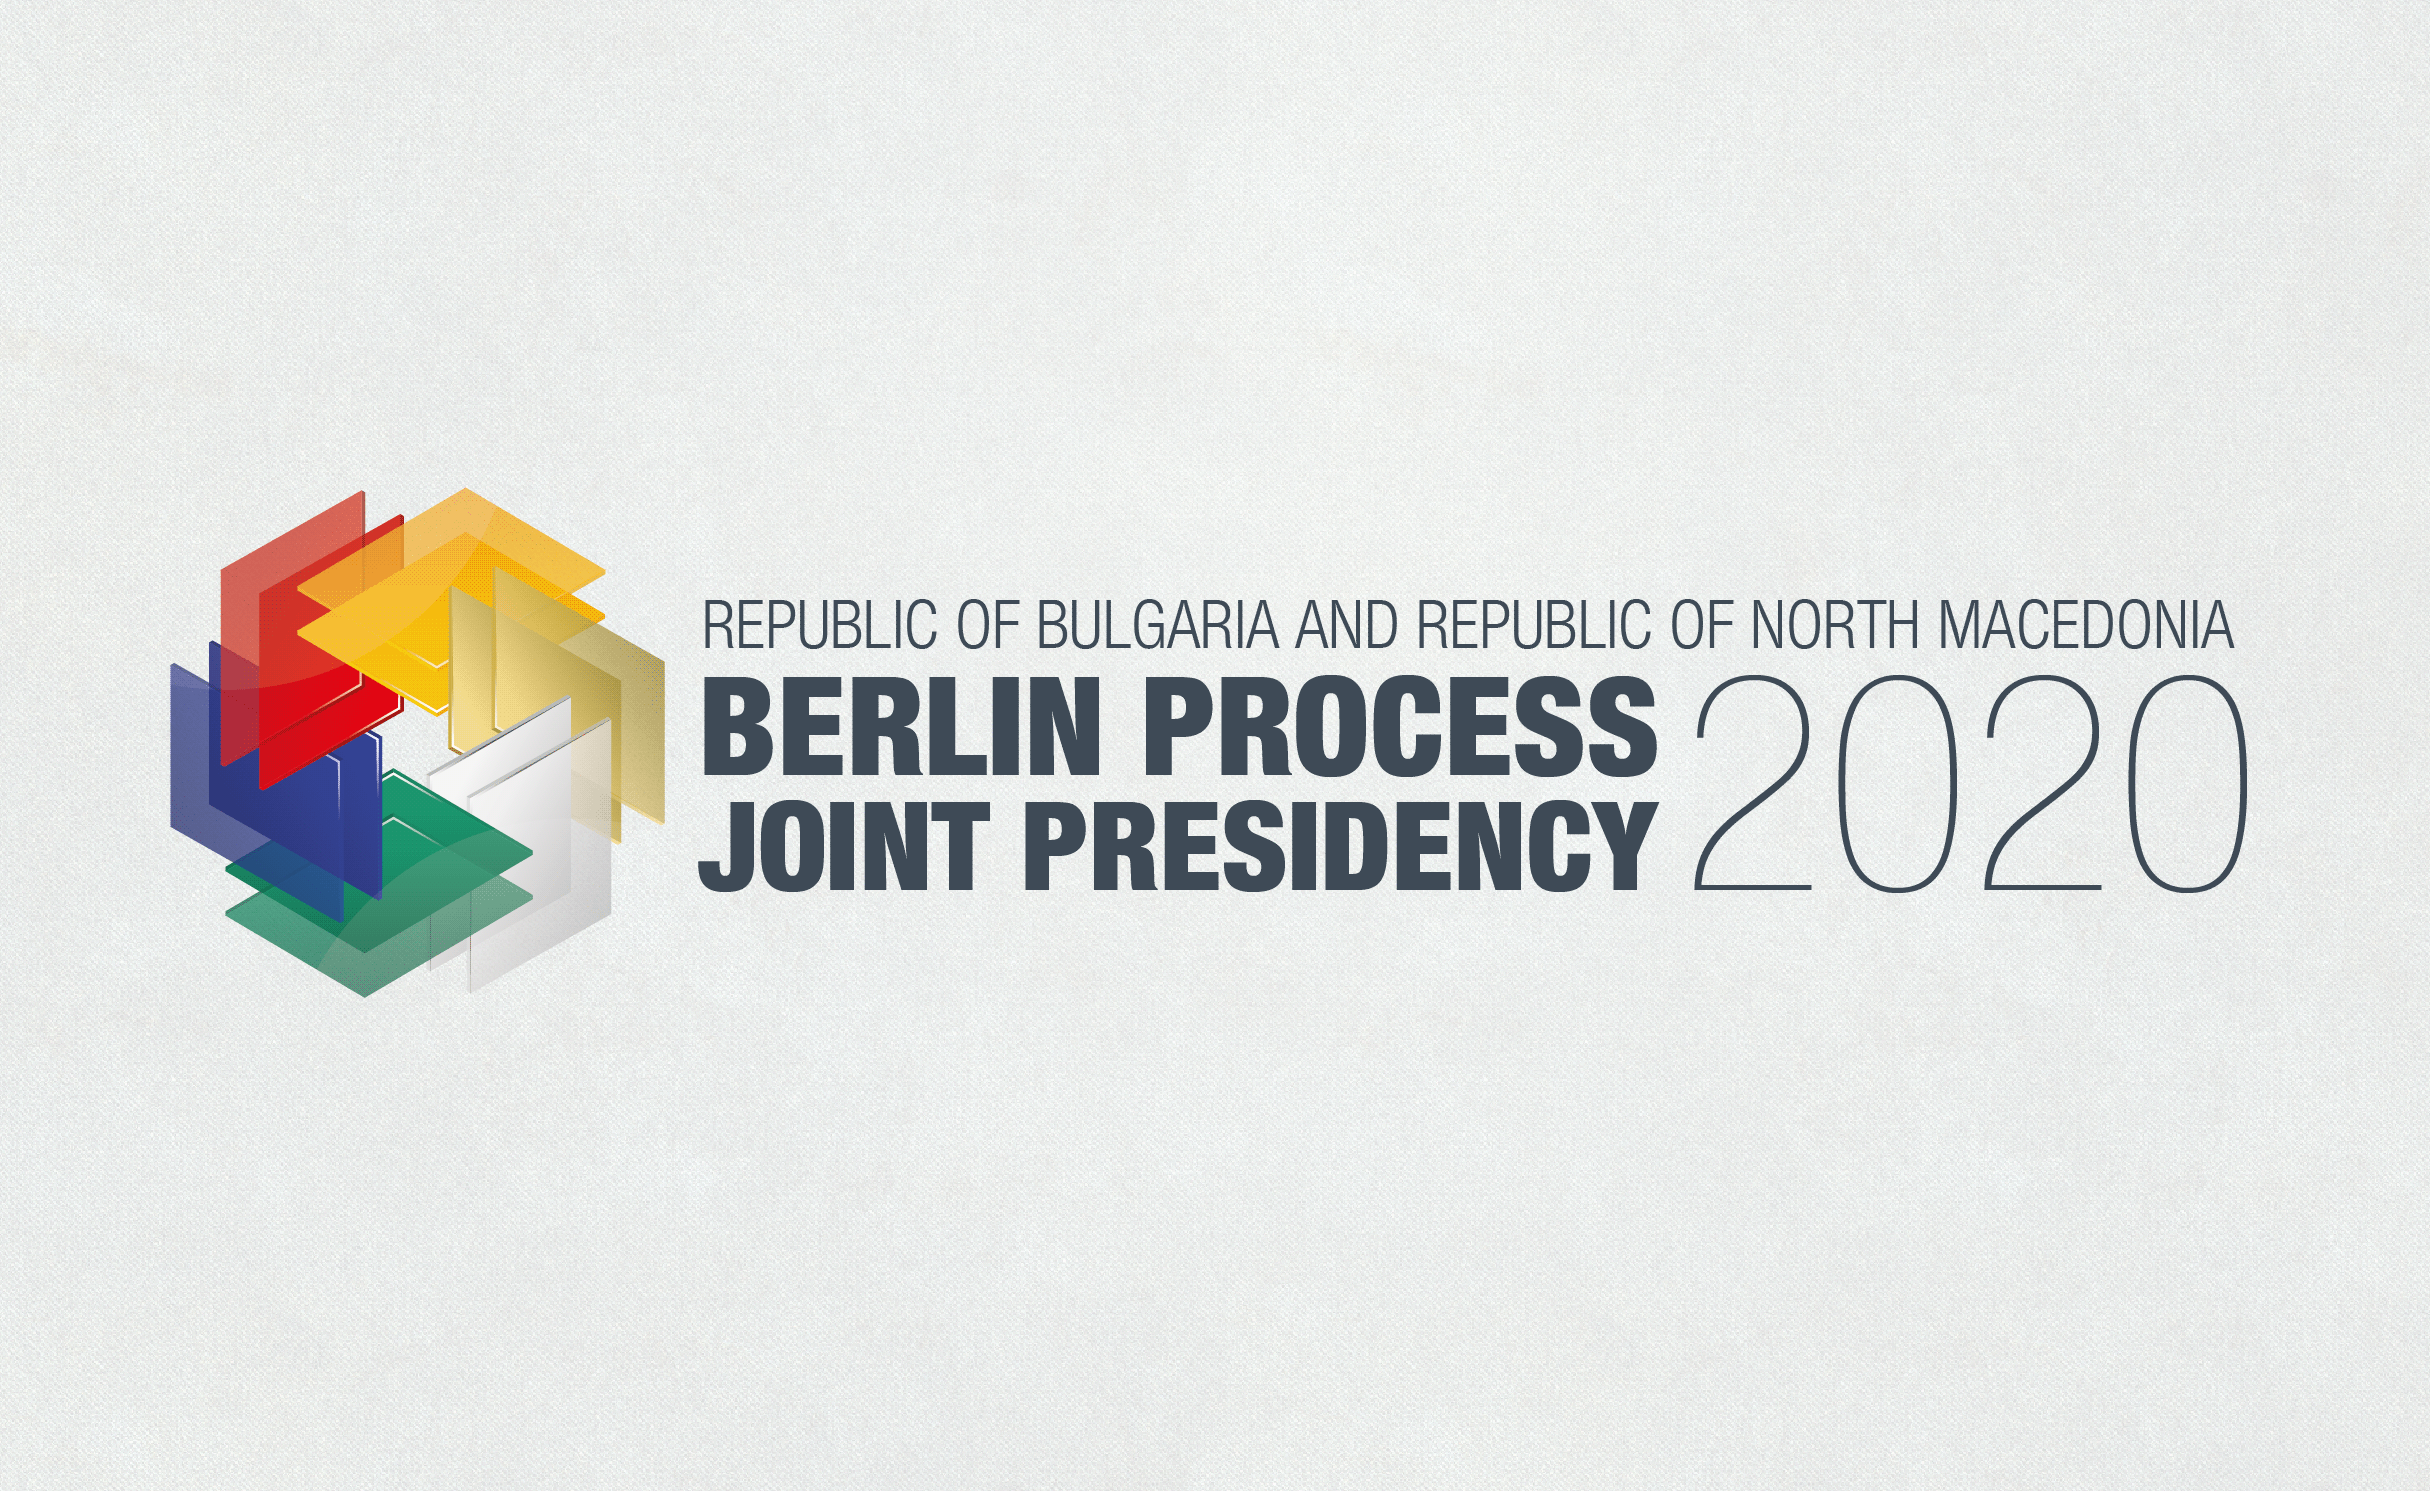 The Joint Chairmanship of the Republic of Bulgaria and the Republic of North Macedonia of the Berlin Process for the Western Balkans organizes a Meeting of the Ministers of Foreign Affairs, VTC format, on 9 of November 2020